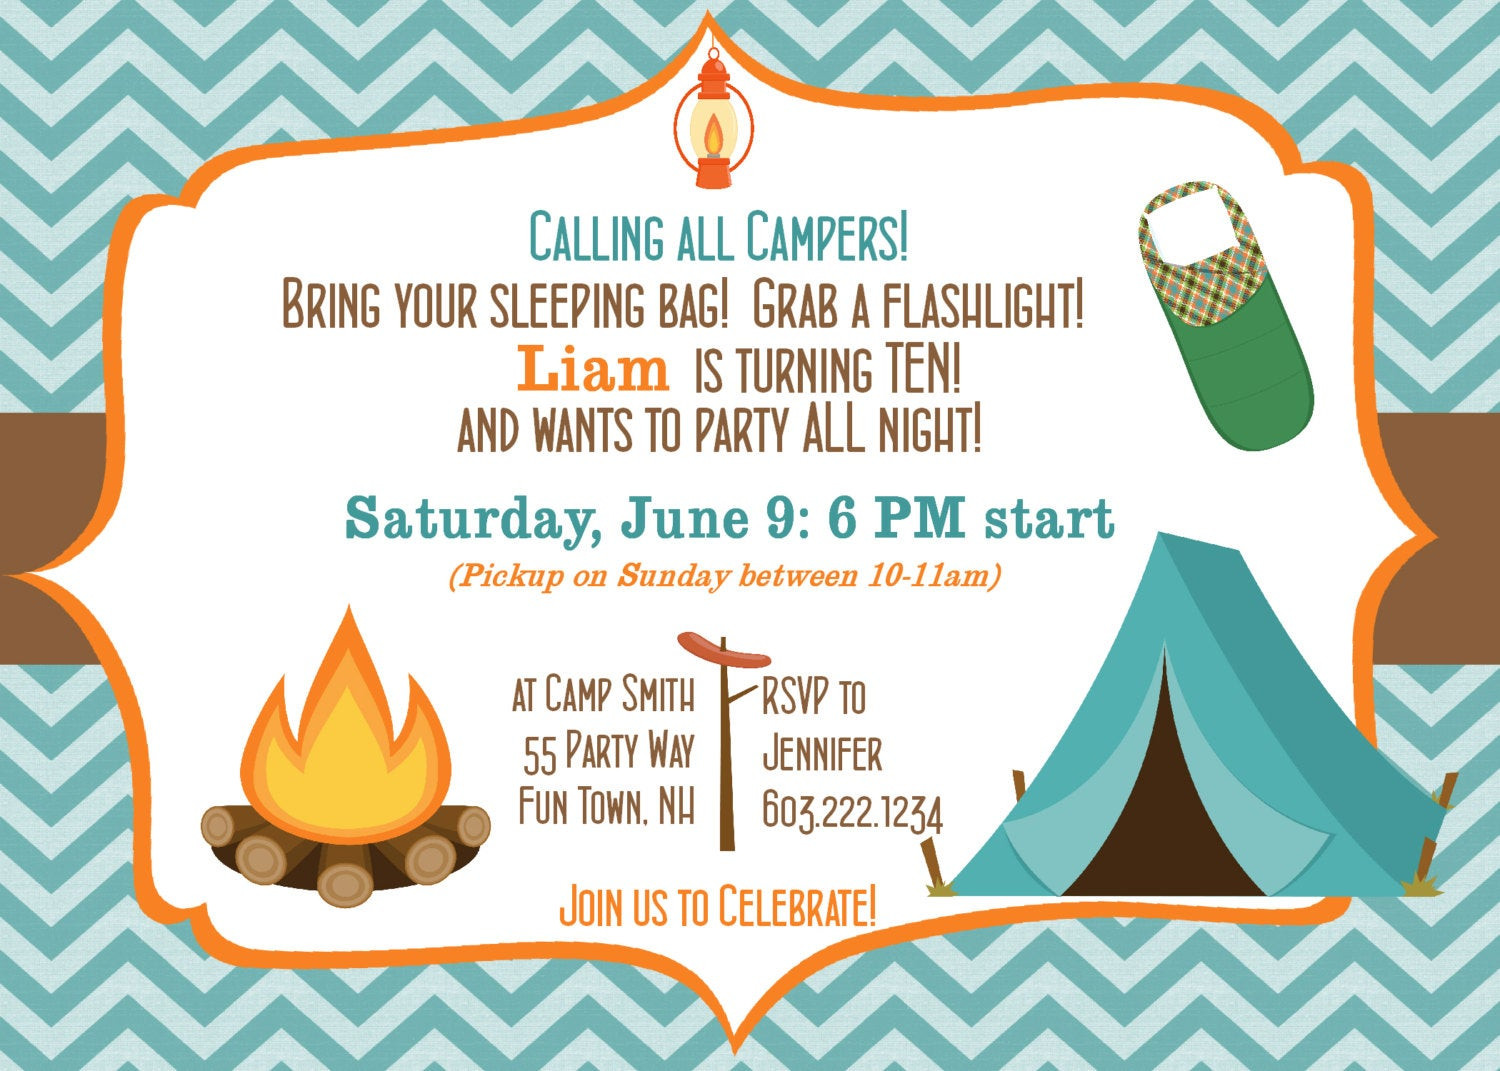 Best ideas about Camping Birthday Invitations . Save or Pin Camping Birthday Party Invitation Printable Camping Out Party Now.